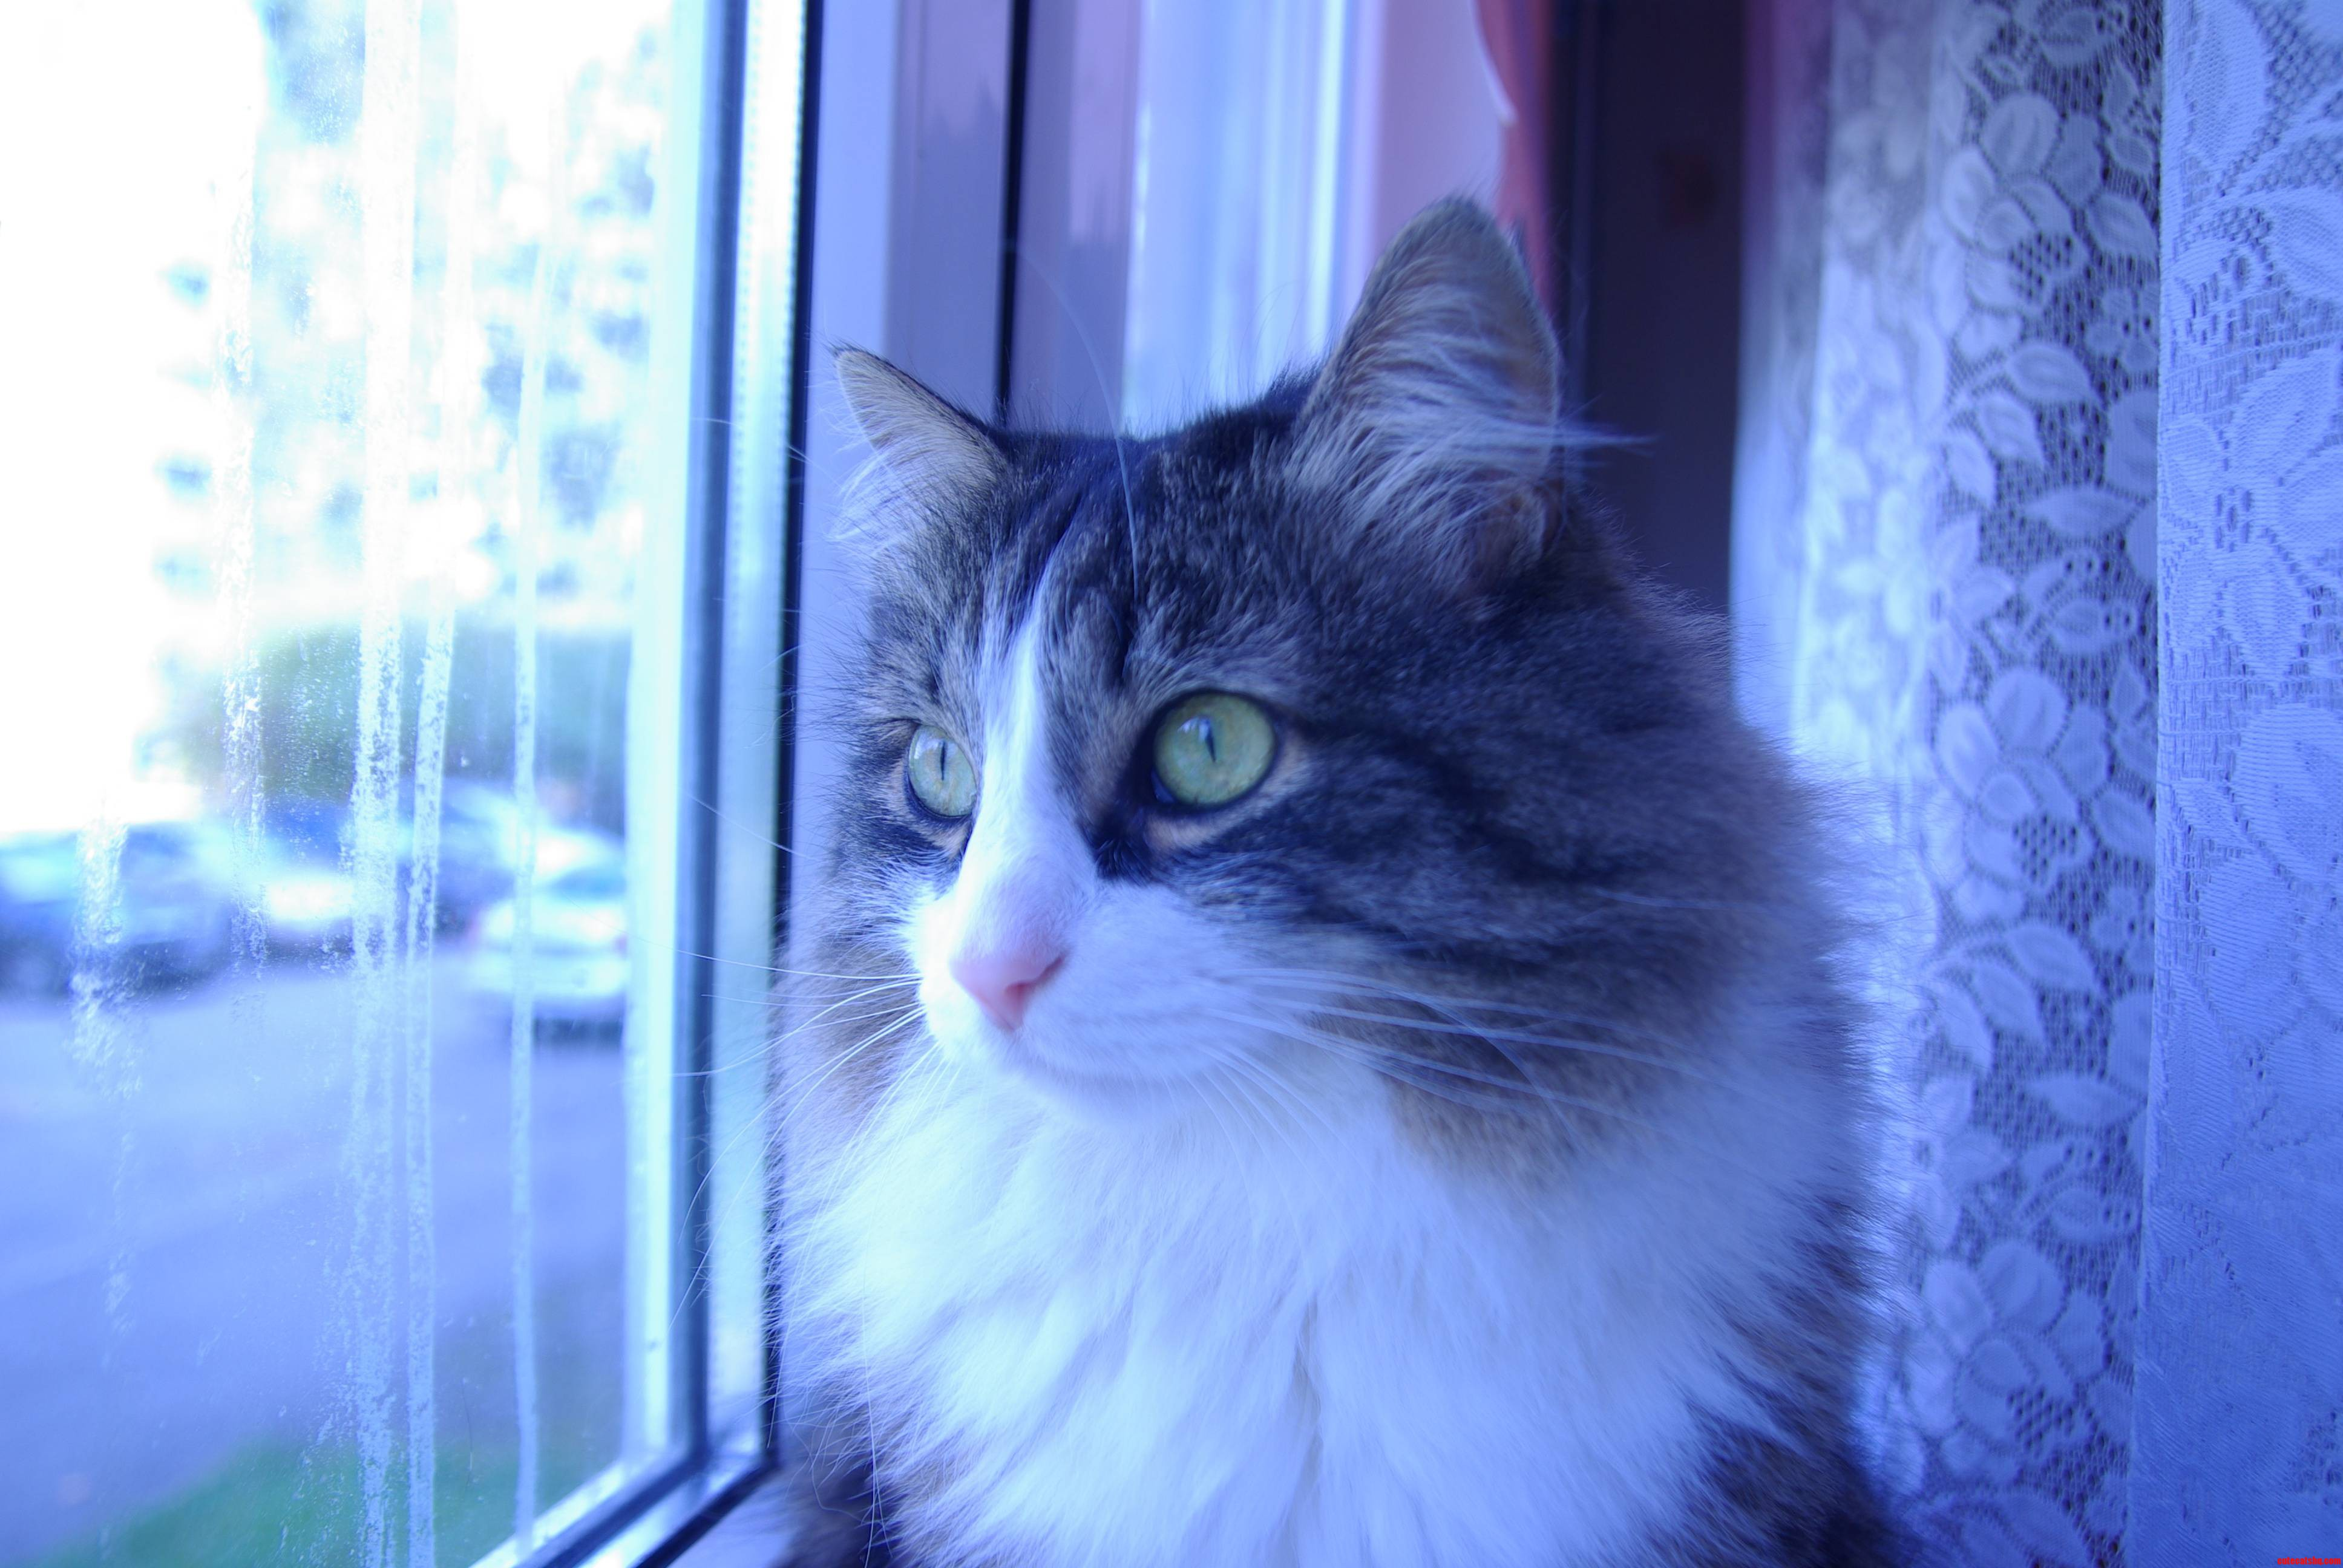 Heres My Cat  She Likes Looking Out Of The Bedroom Window.